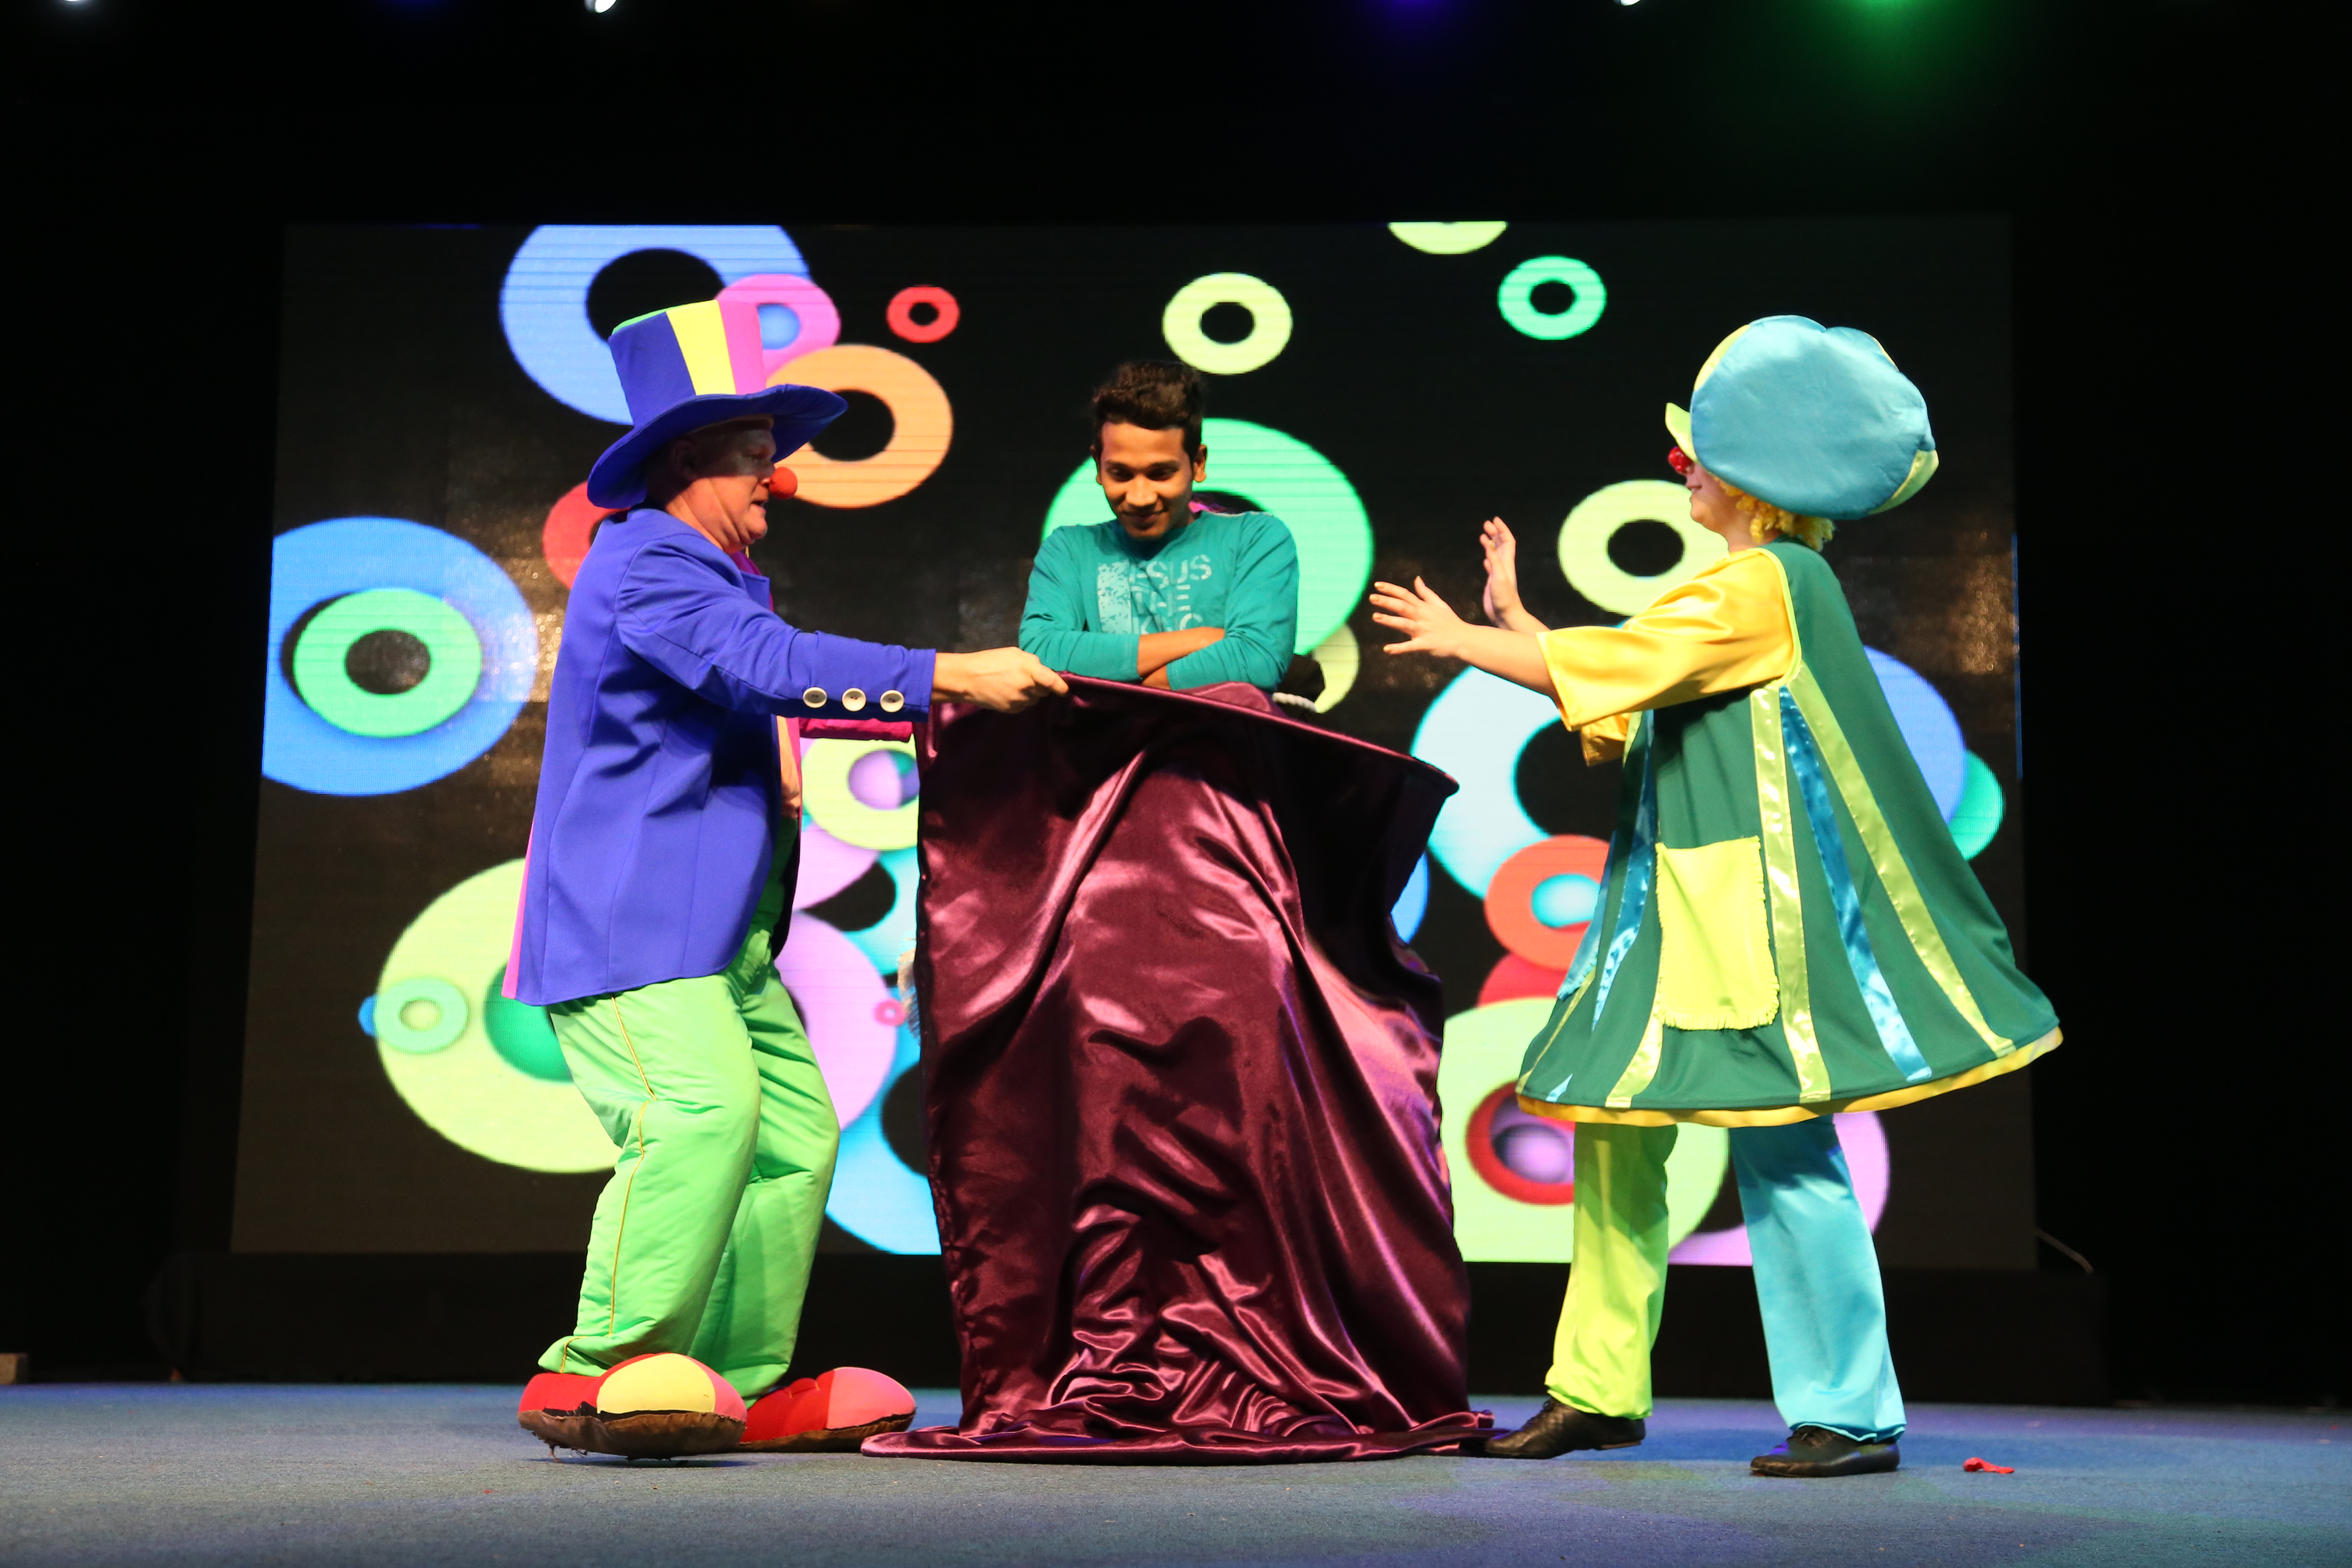 #OmanPride: Mesmerising stage shows at Muscat Festival